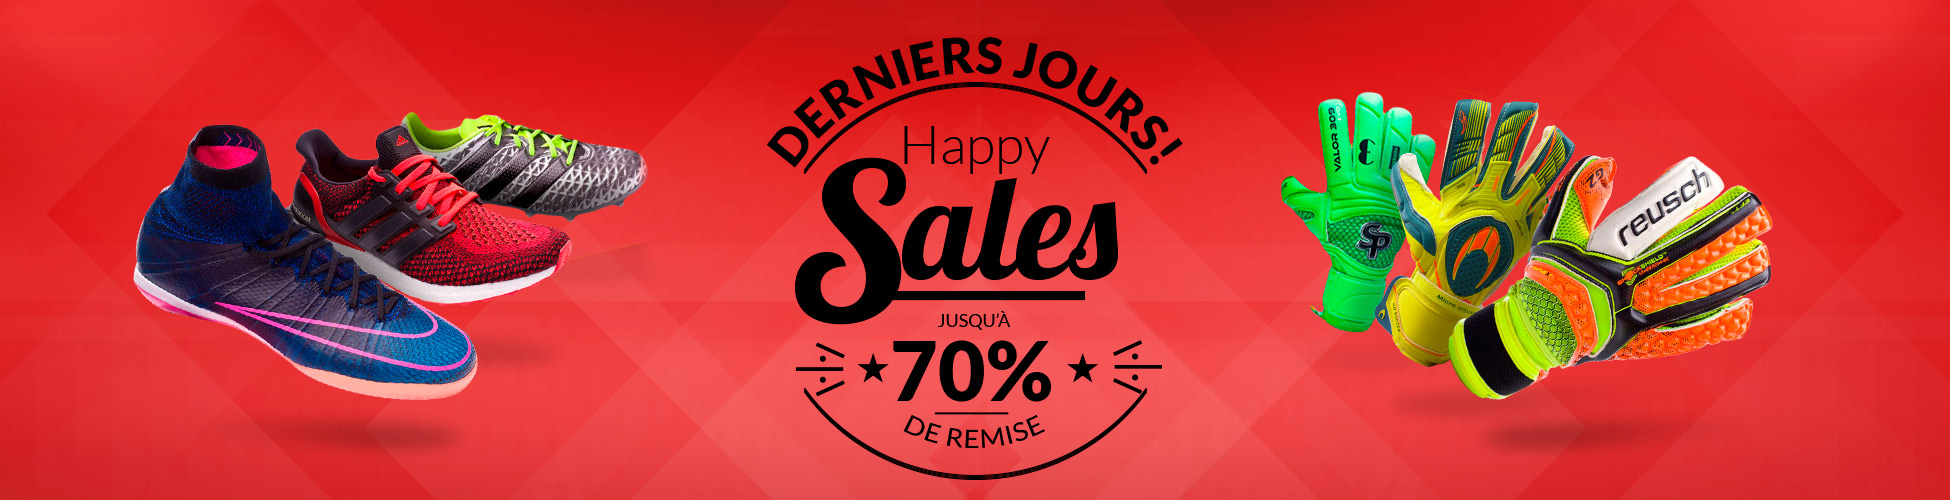 HAPPY SALES FR